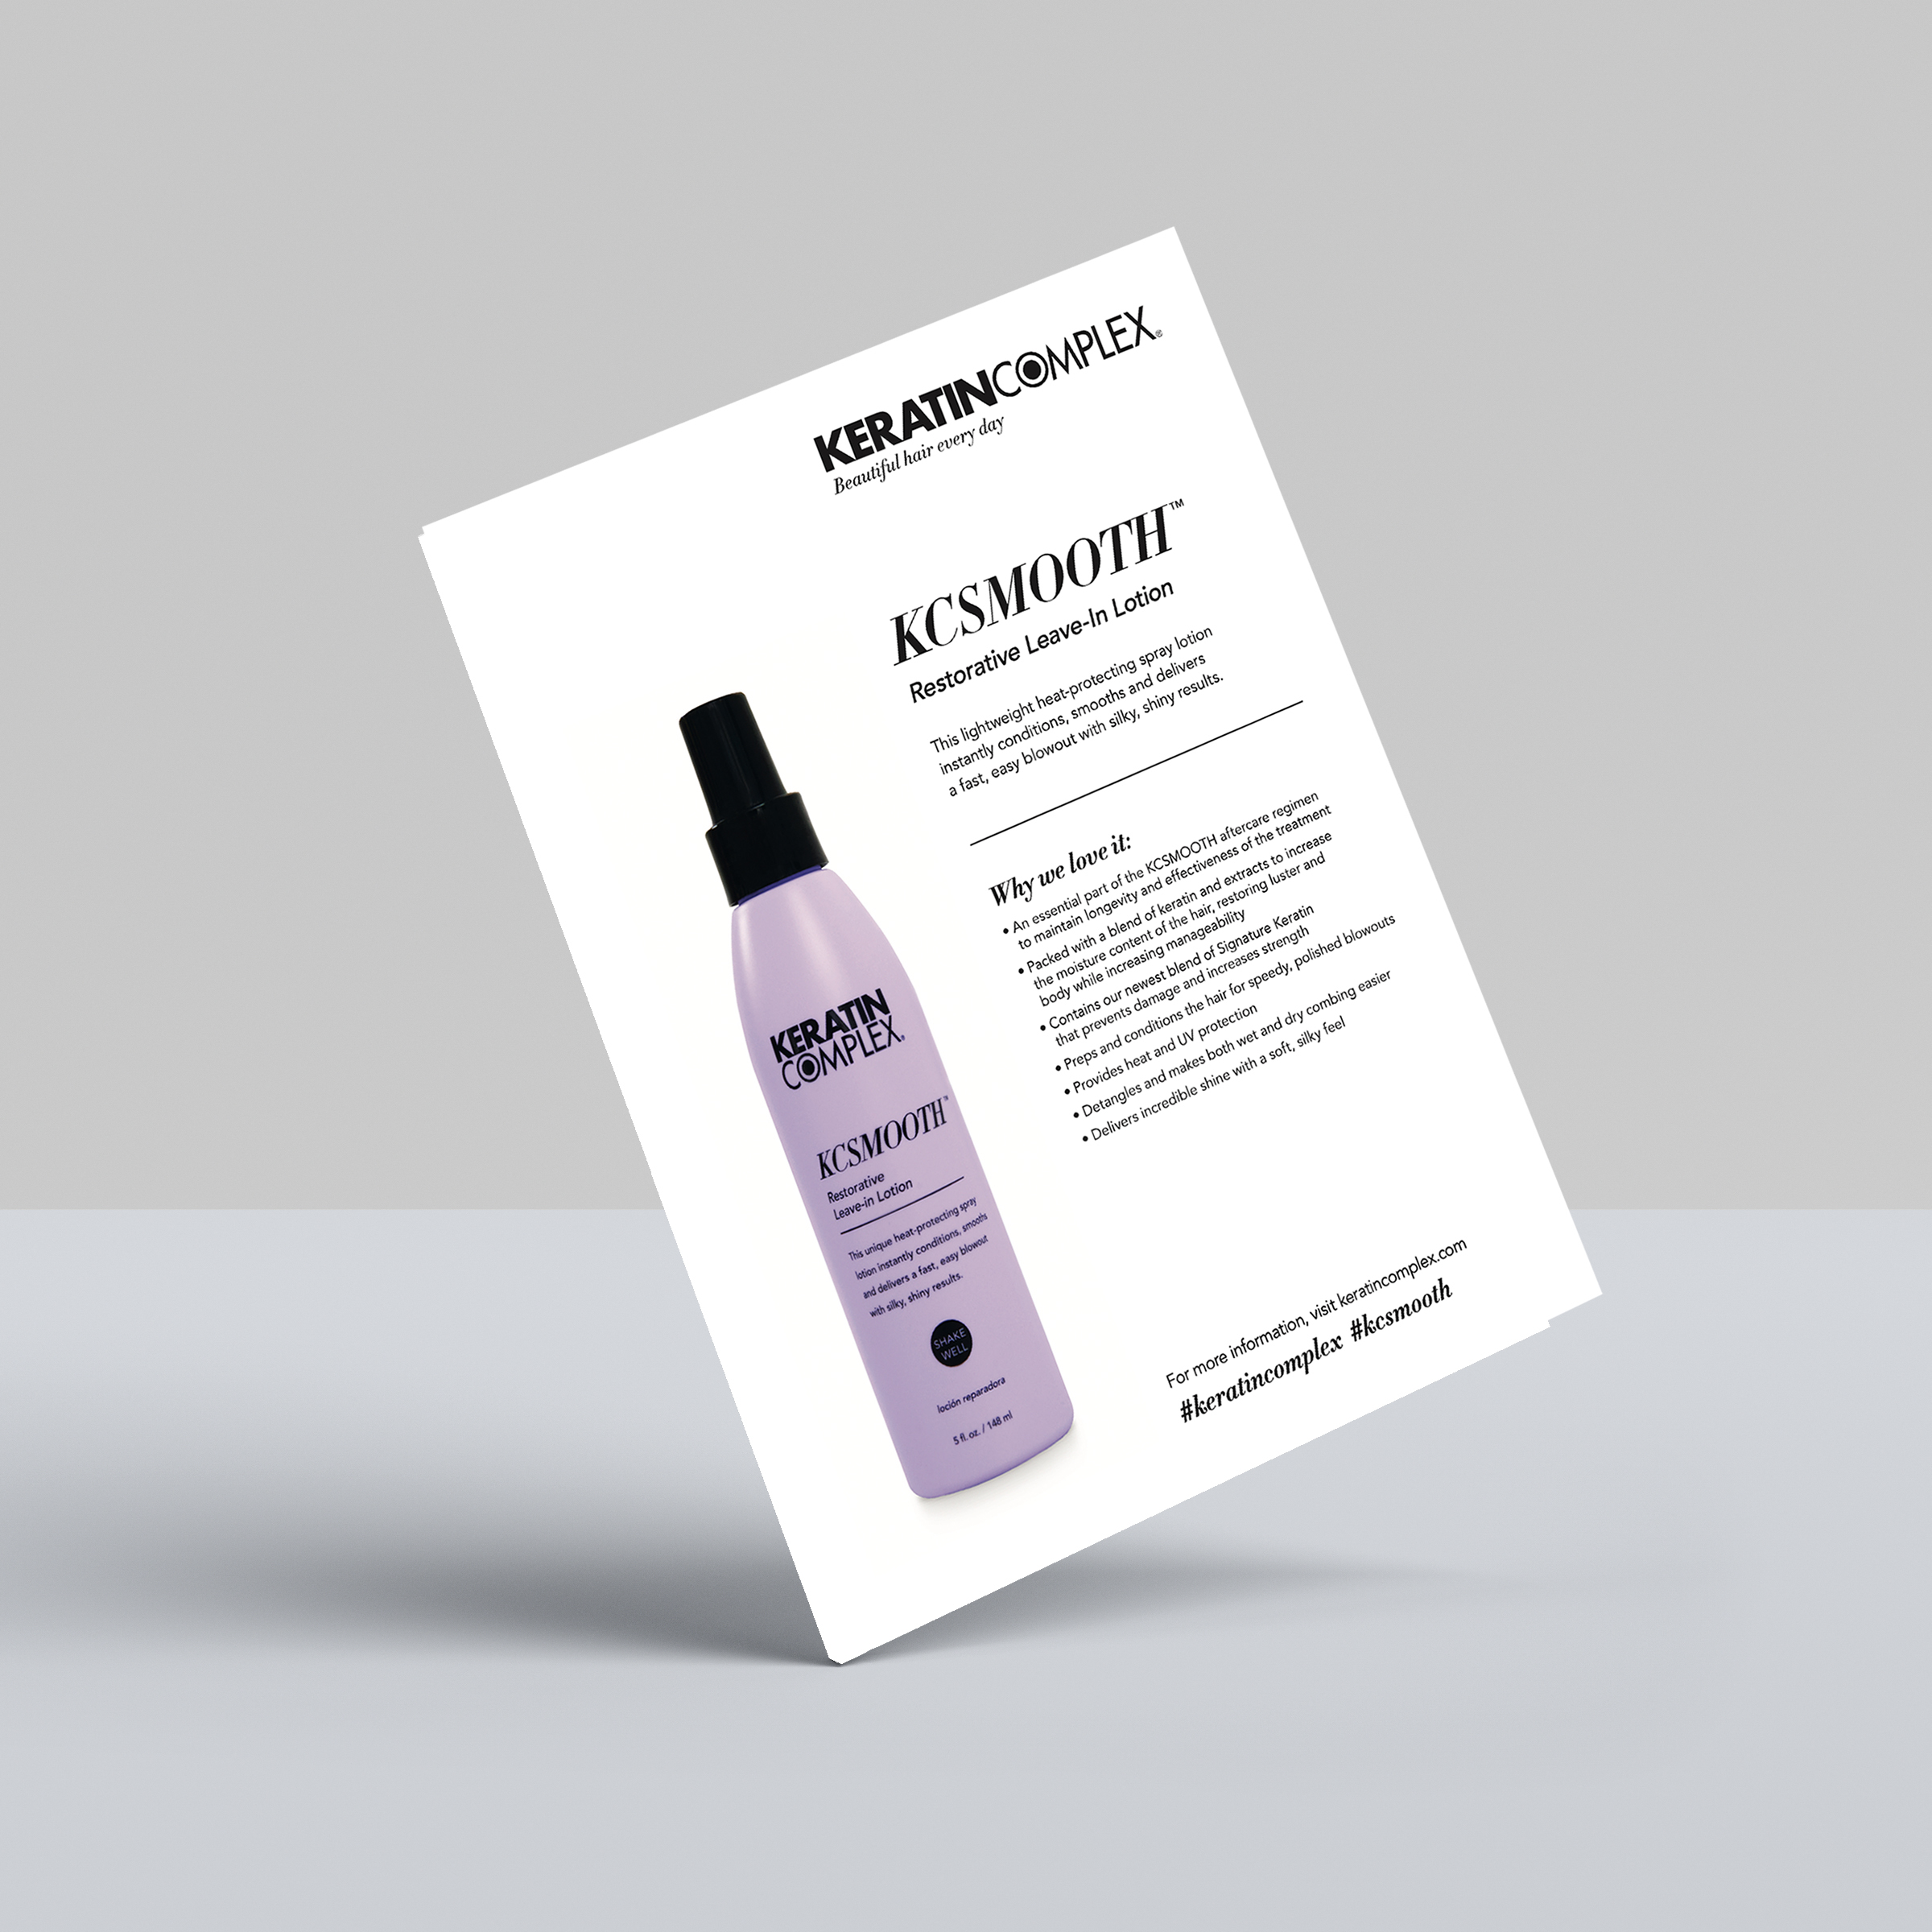 KCSMOOTH Restorative Leave-In Lotion Info Sheet